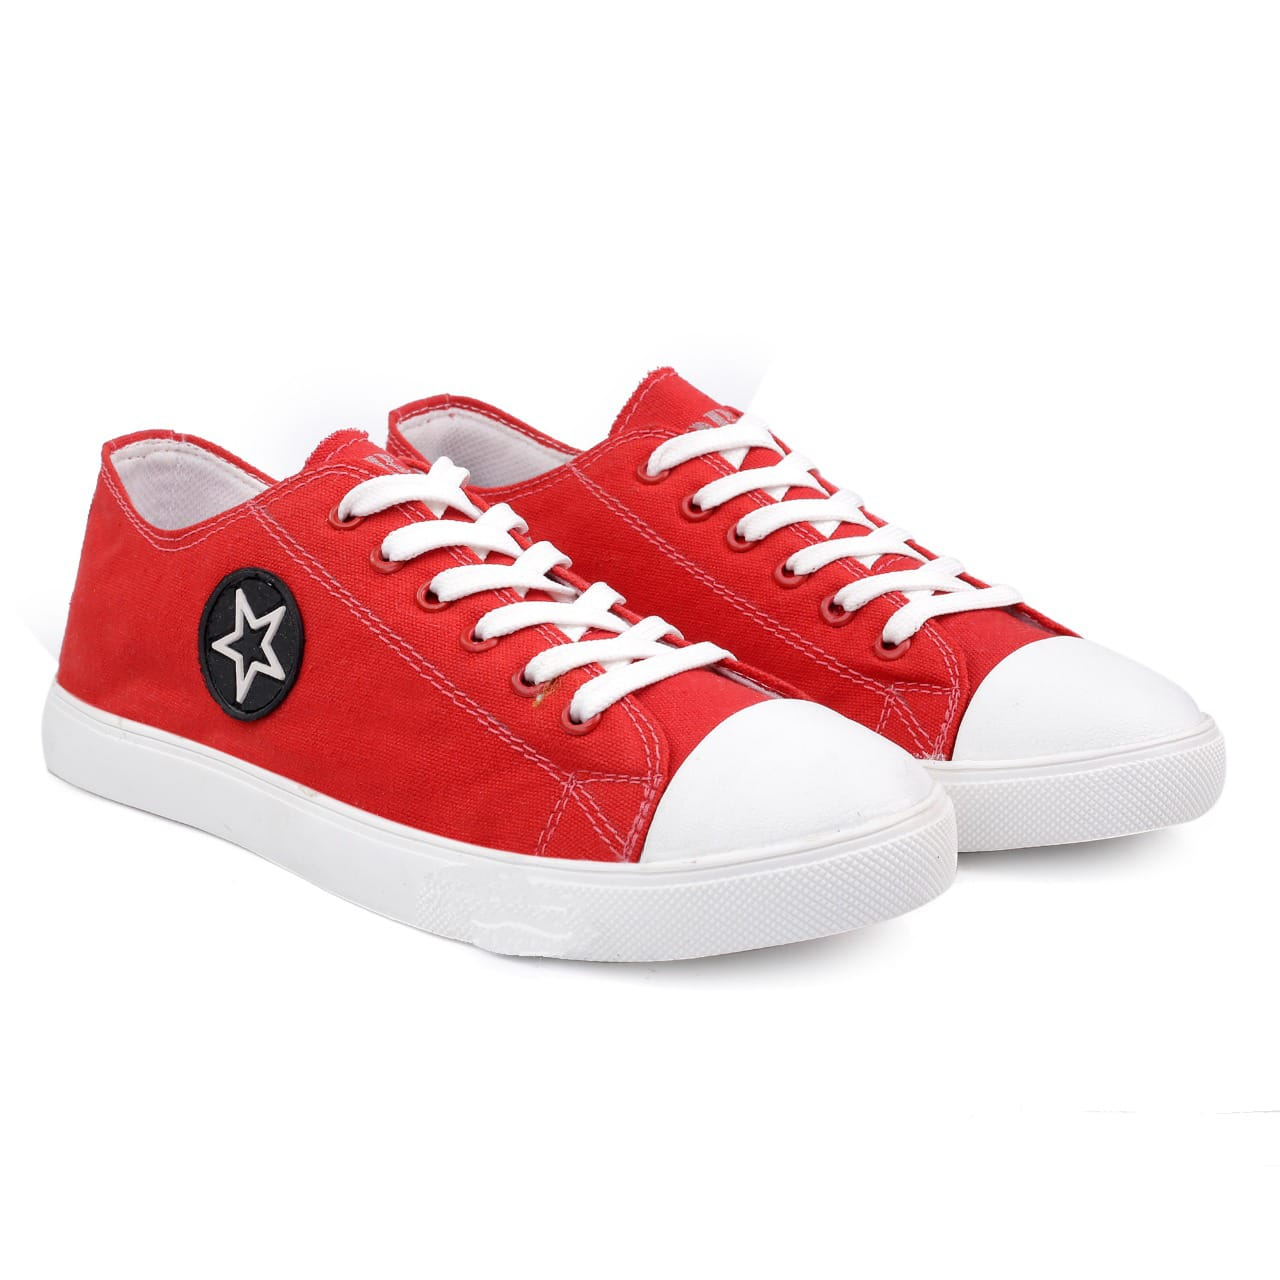 JK PORT Original Comfortable & Reliable JKPC55RED Casual Shoes In Sky Red Colour (Red, 6-10( Men`s), 8 PAIRS)